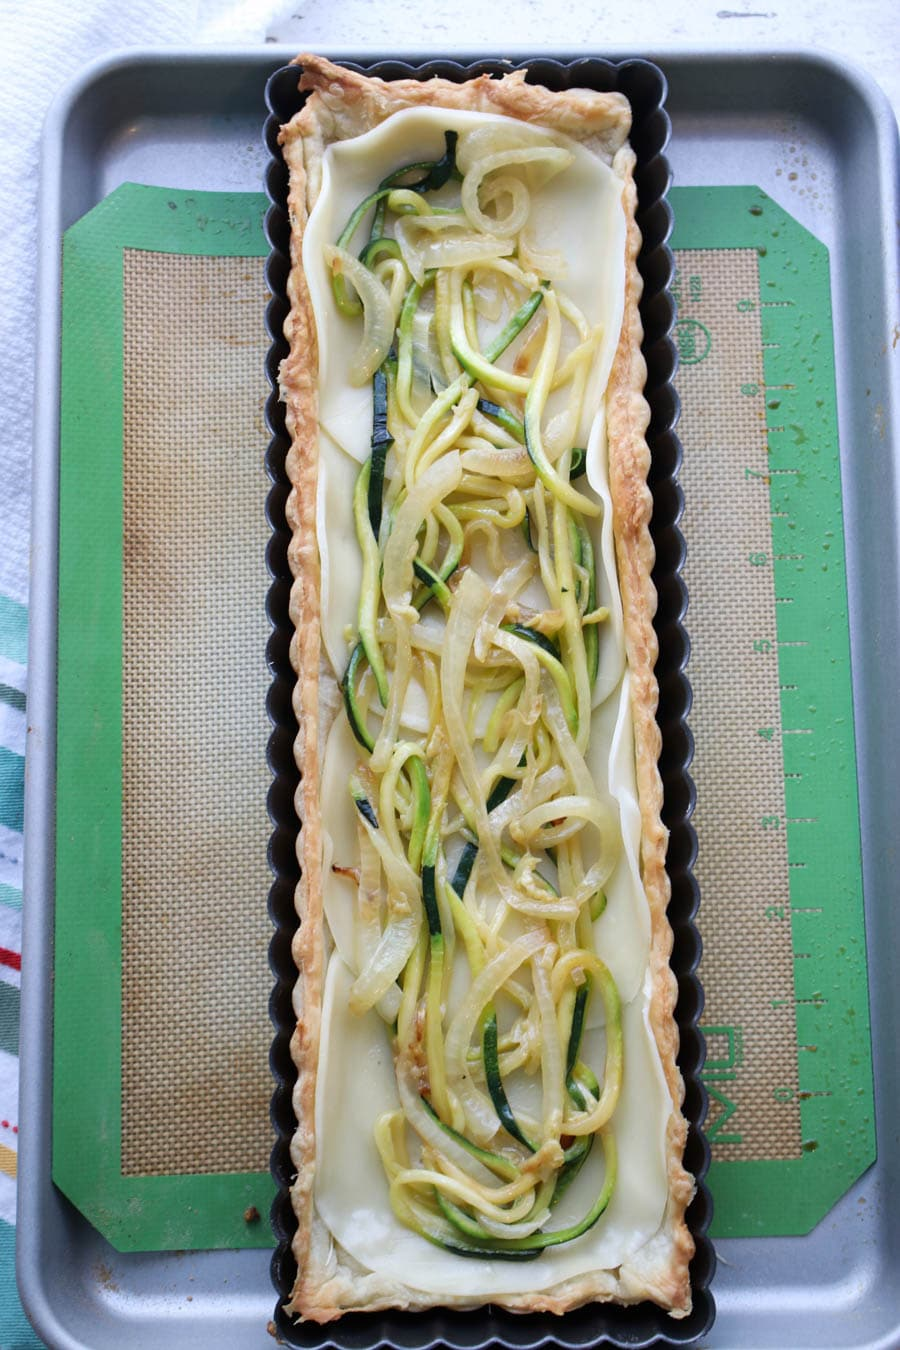 Tart with zucchini and onions